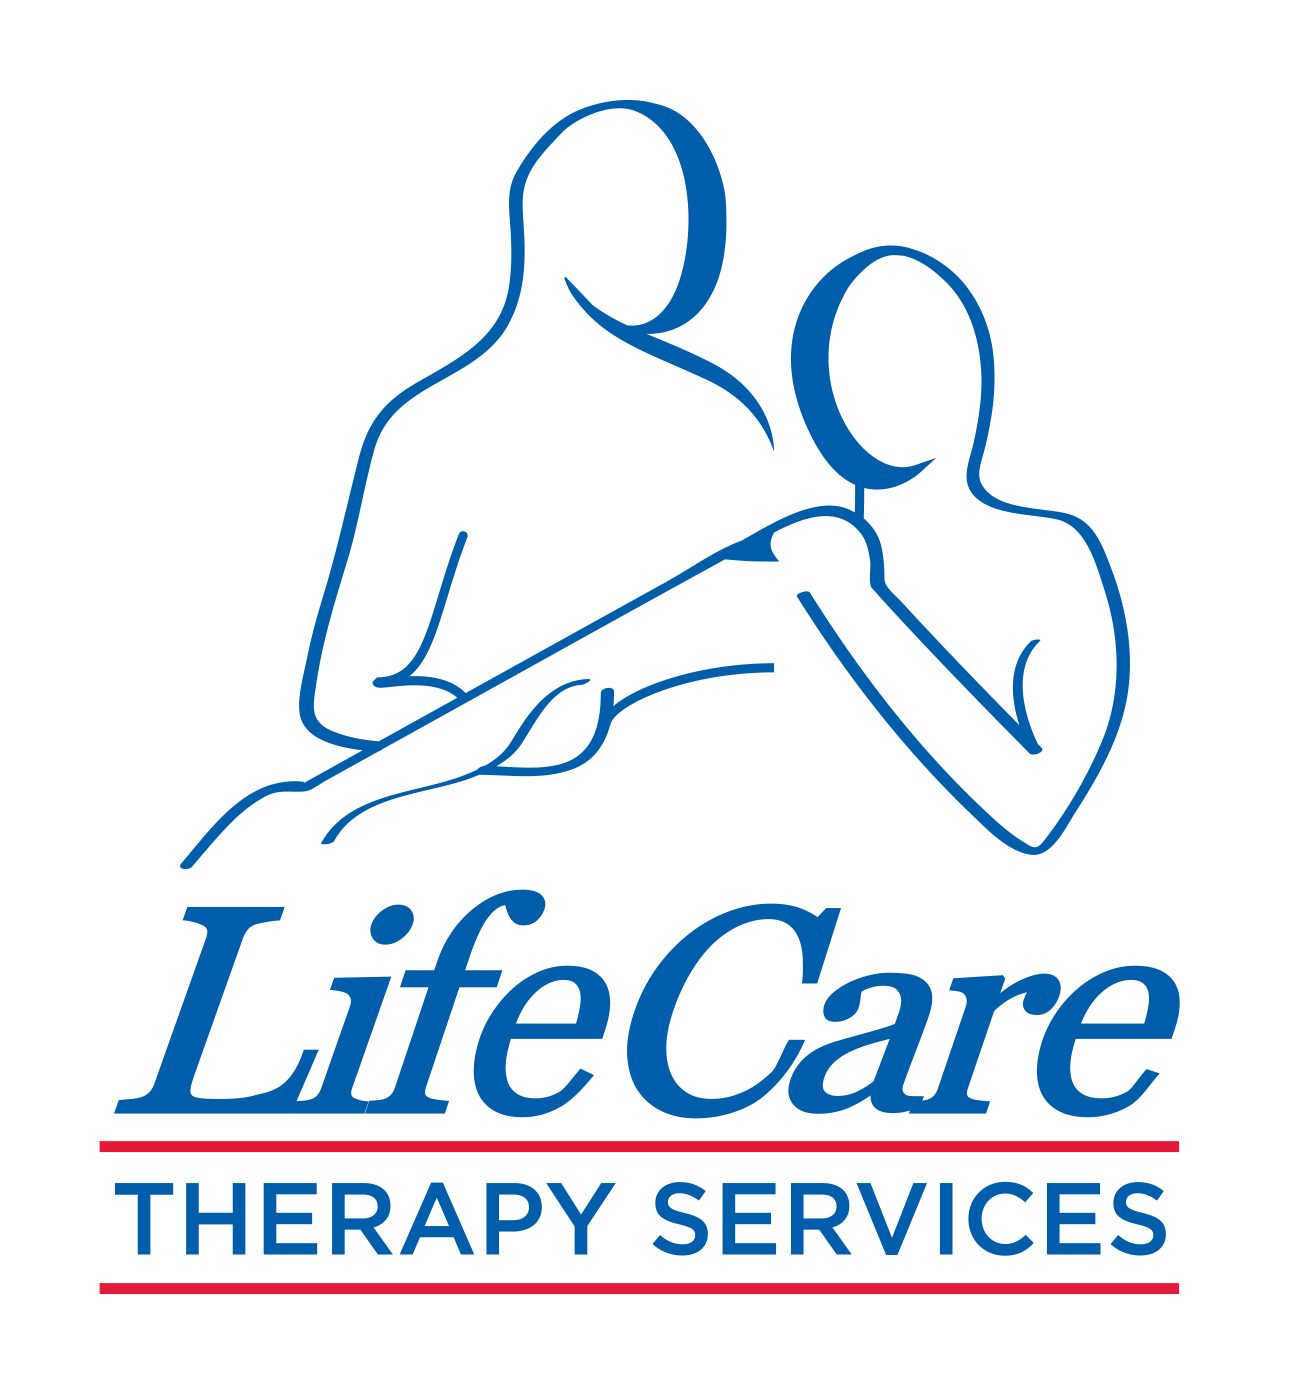 LifeCare Therapy